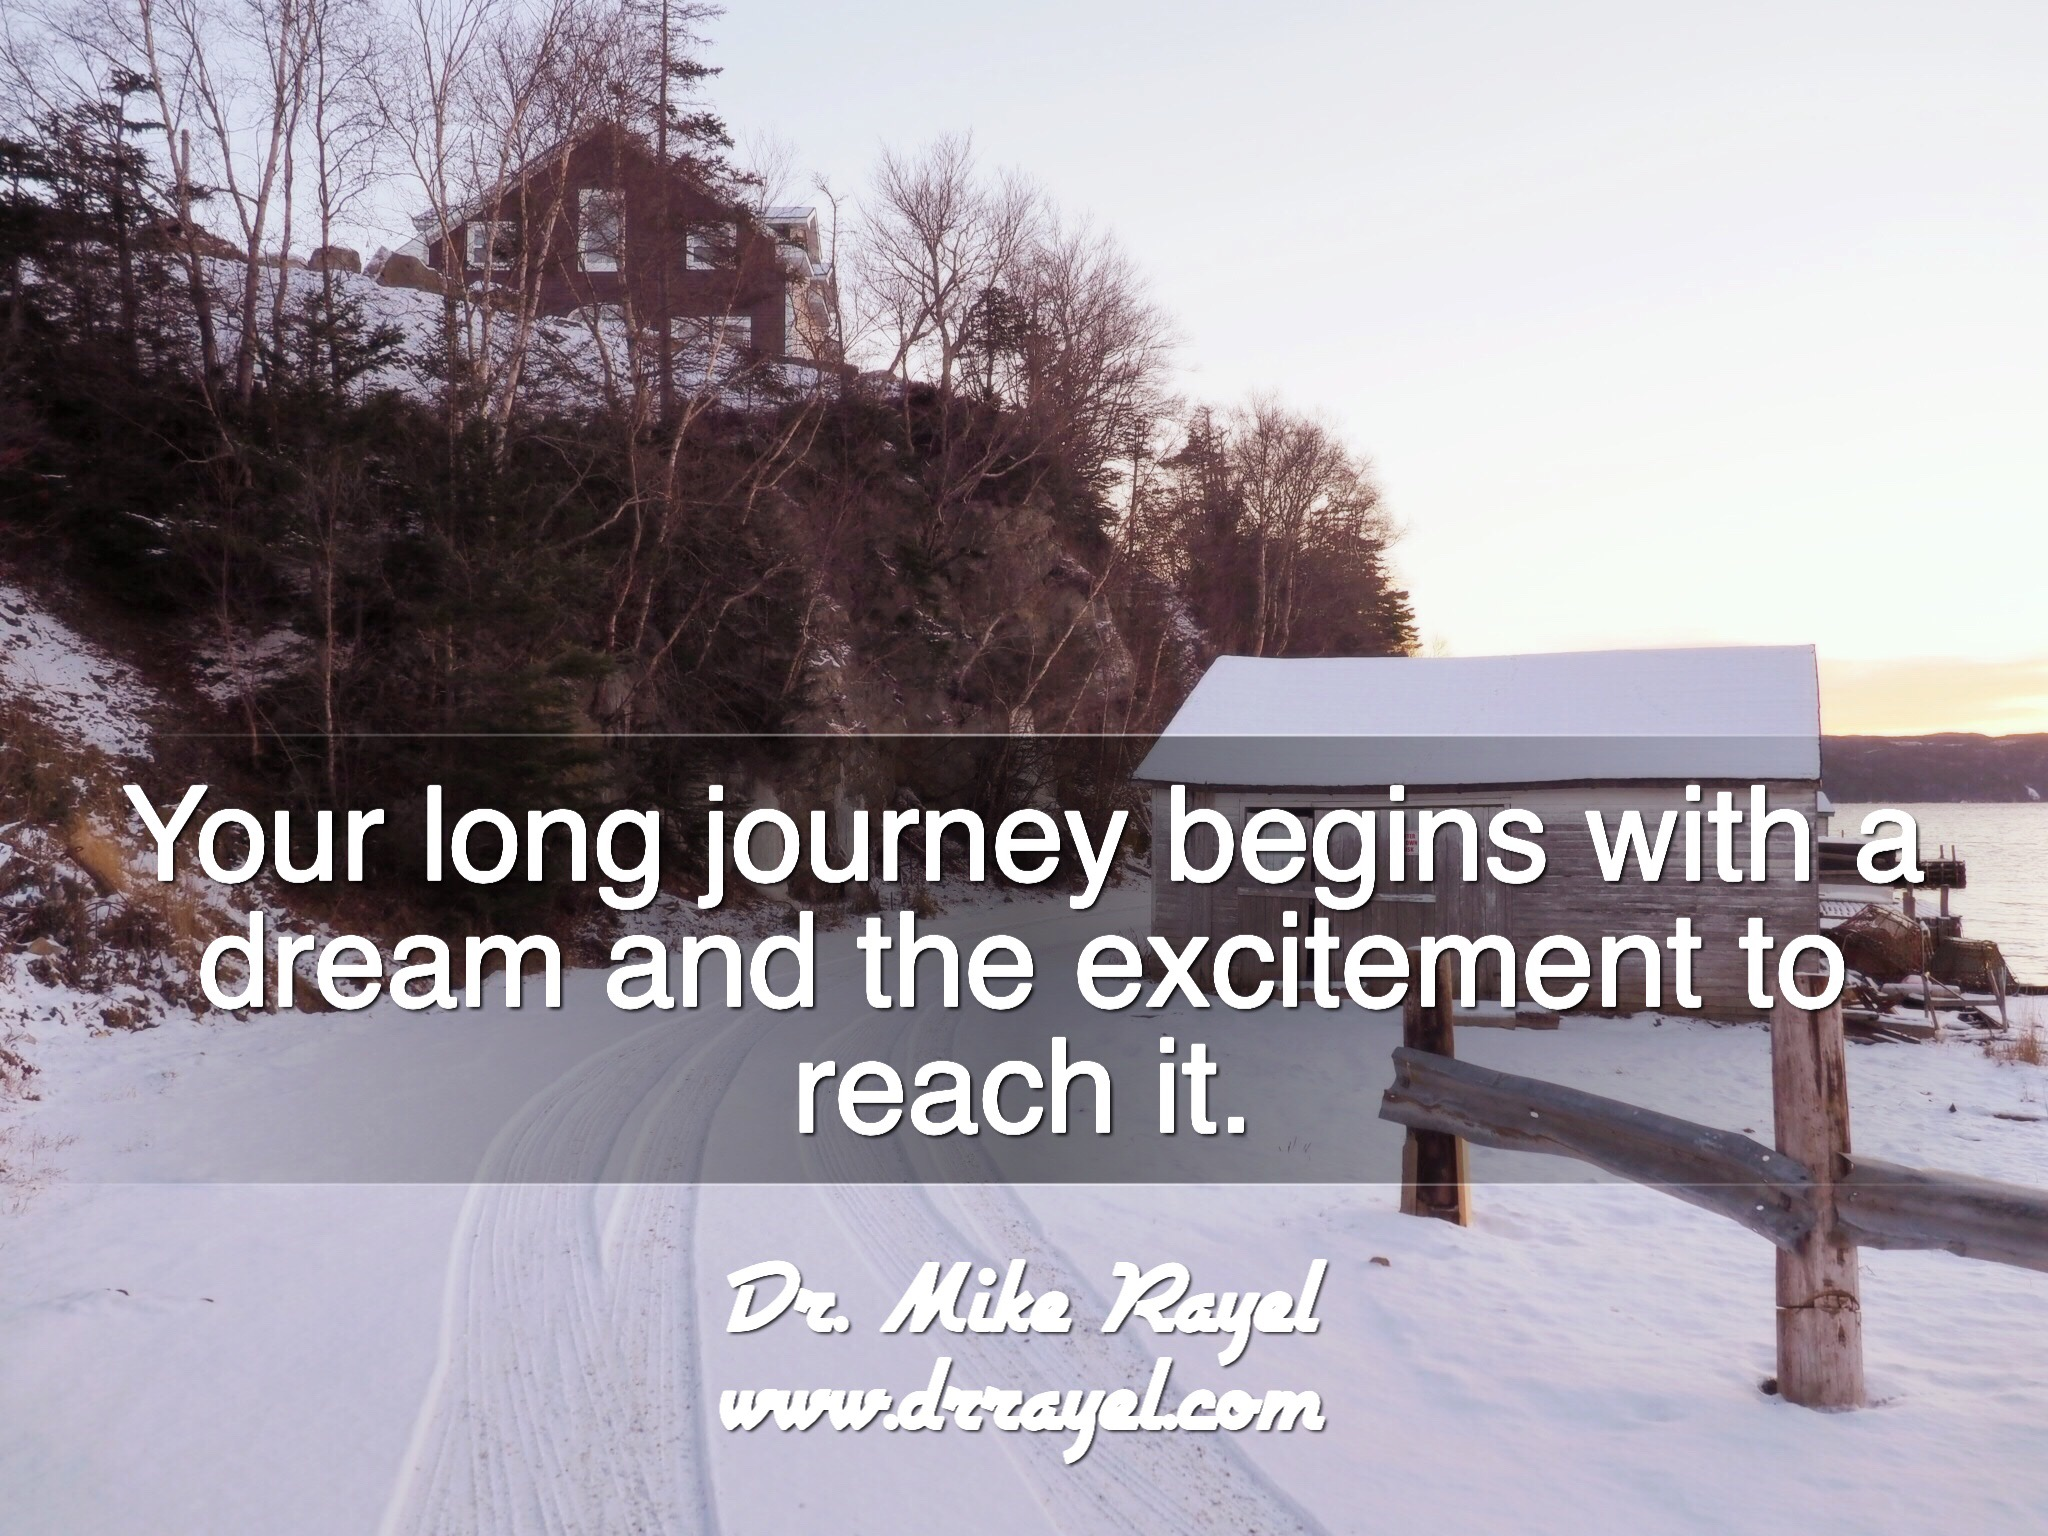 Long journey quote by Dr. Mike Rayel